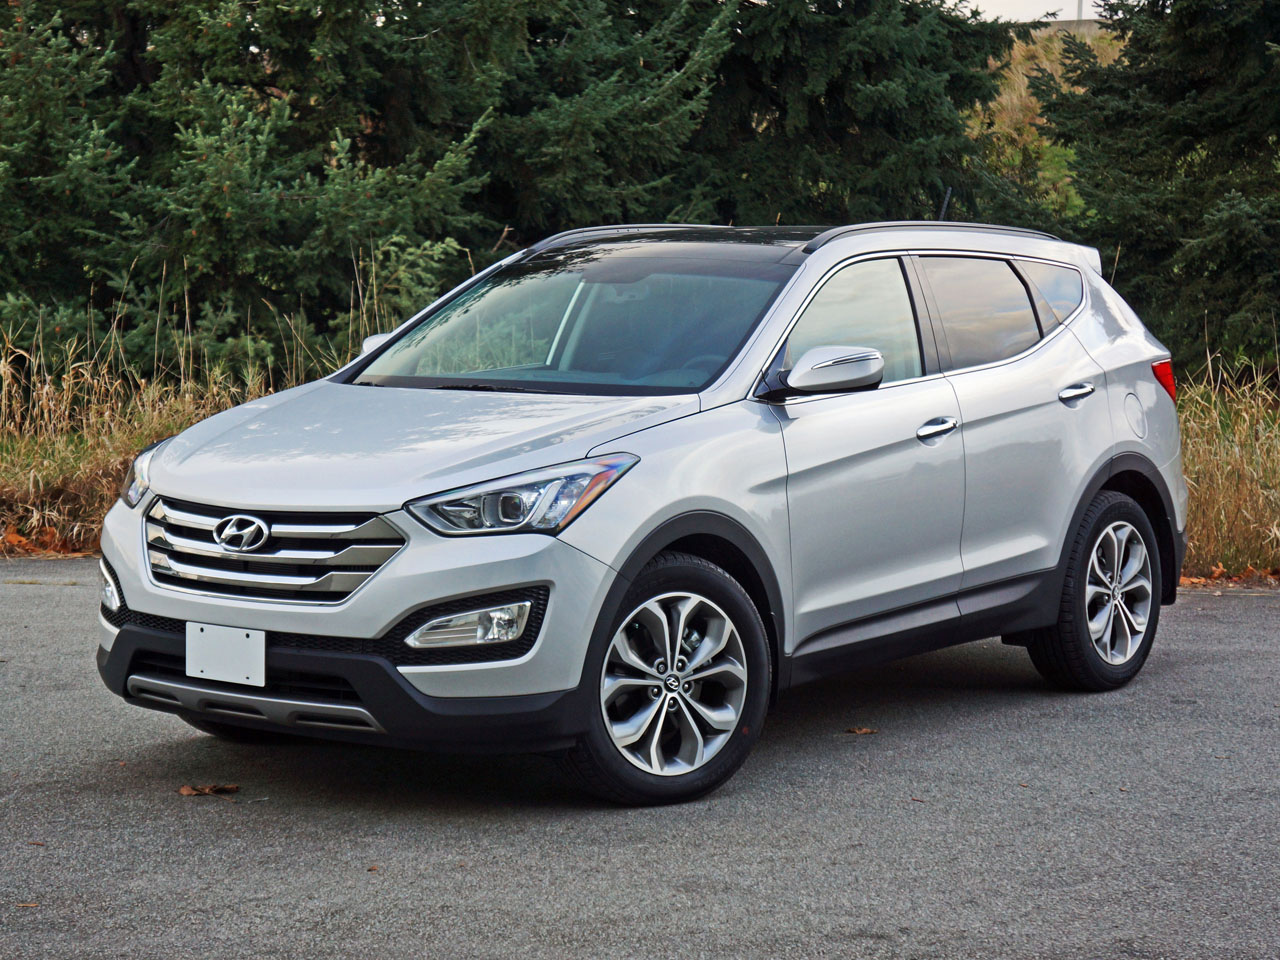 2014 hyundai santa fe sport 2 0t se road test review carcostcanada. Black Bedroom Furniture Sets. Home Design Ideas